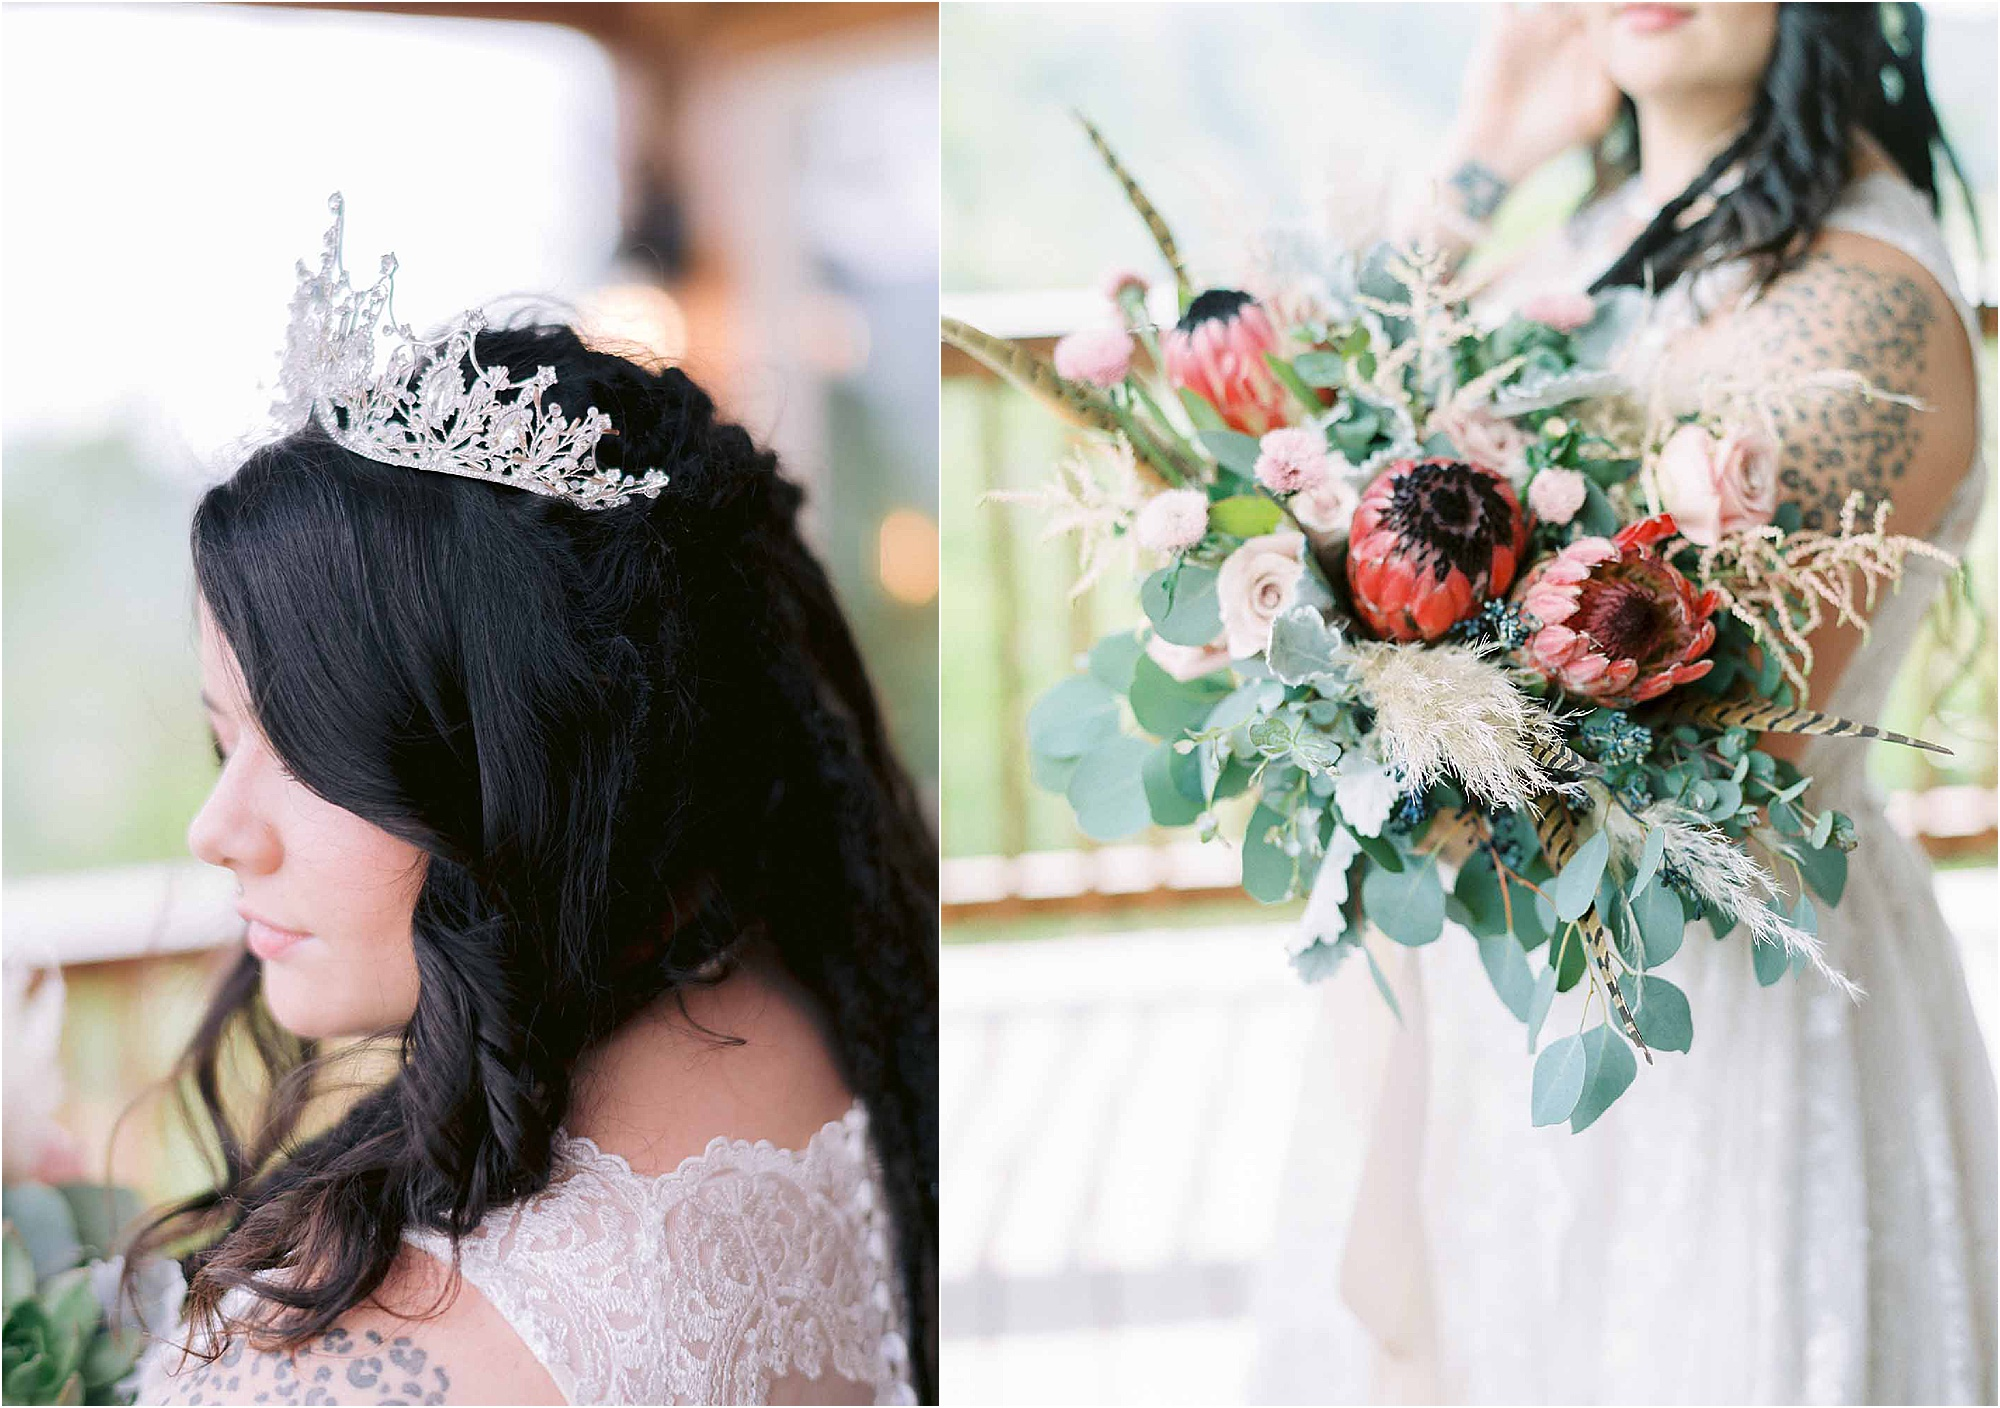 large flower bouquet with bride and bridal crown